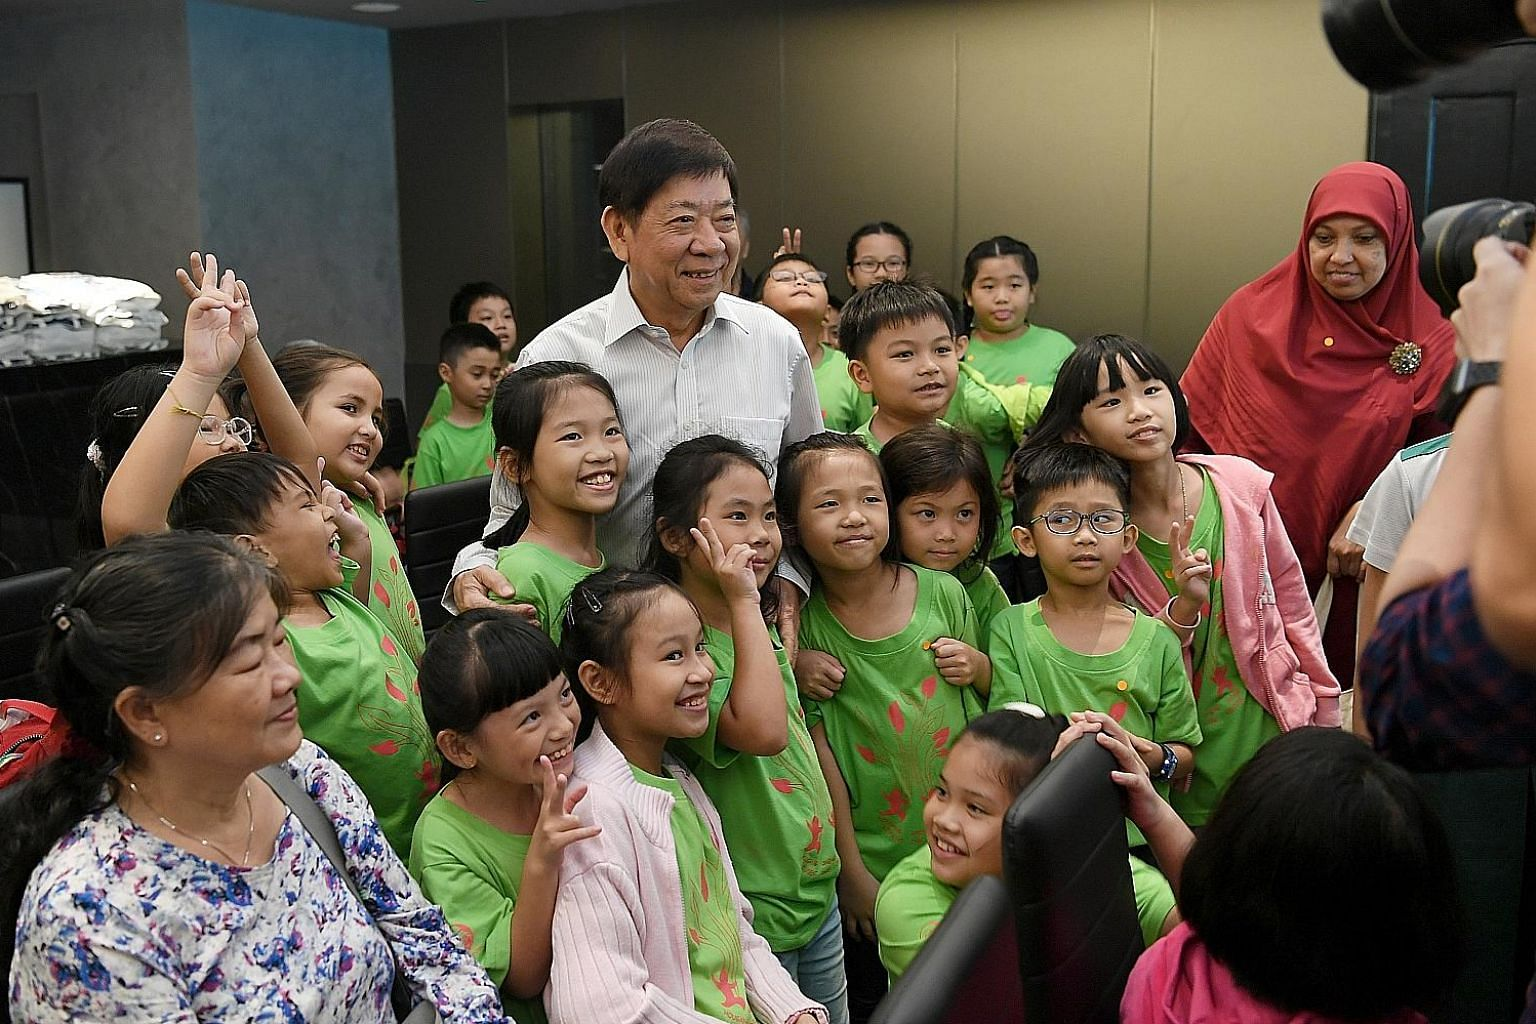 About 60 participants from the Hougang Sheng Hong Student Care Centre yesterday looking at multimedia exhibits that showcase Singapore's cultural history at The Bicentennial Experience at Fort Canning Centre. At the event, Transport Minister Khaw Boo